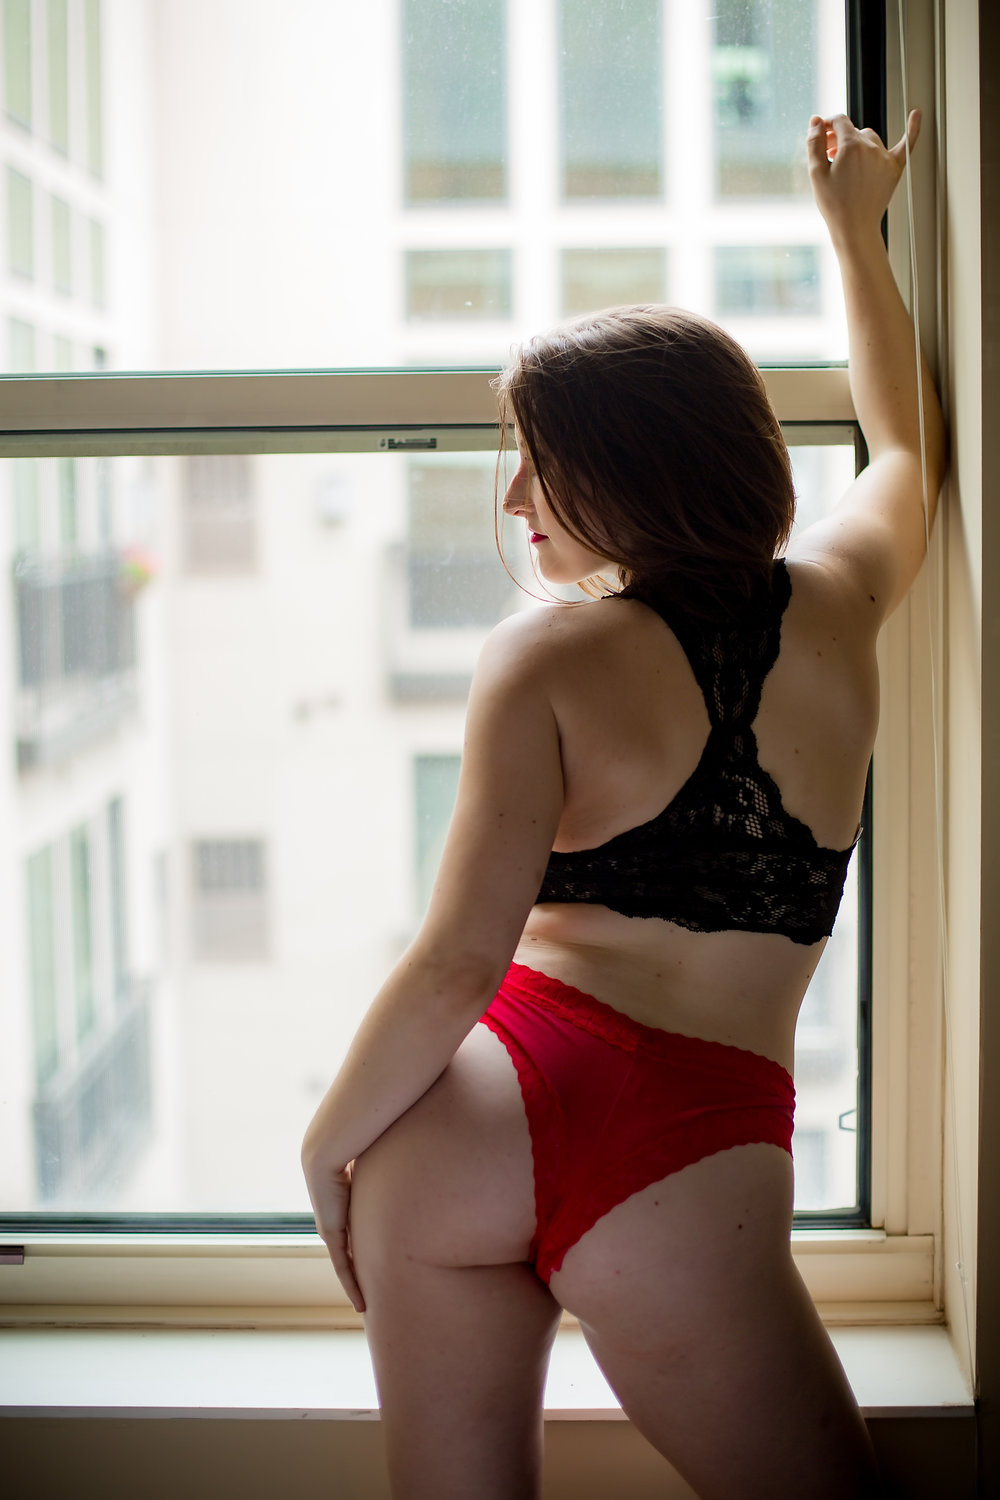 Check out the rest of Ivory's set by backing at http://patreon.com/hellapositive!